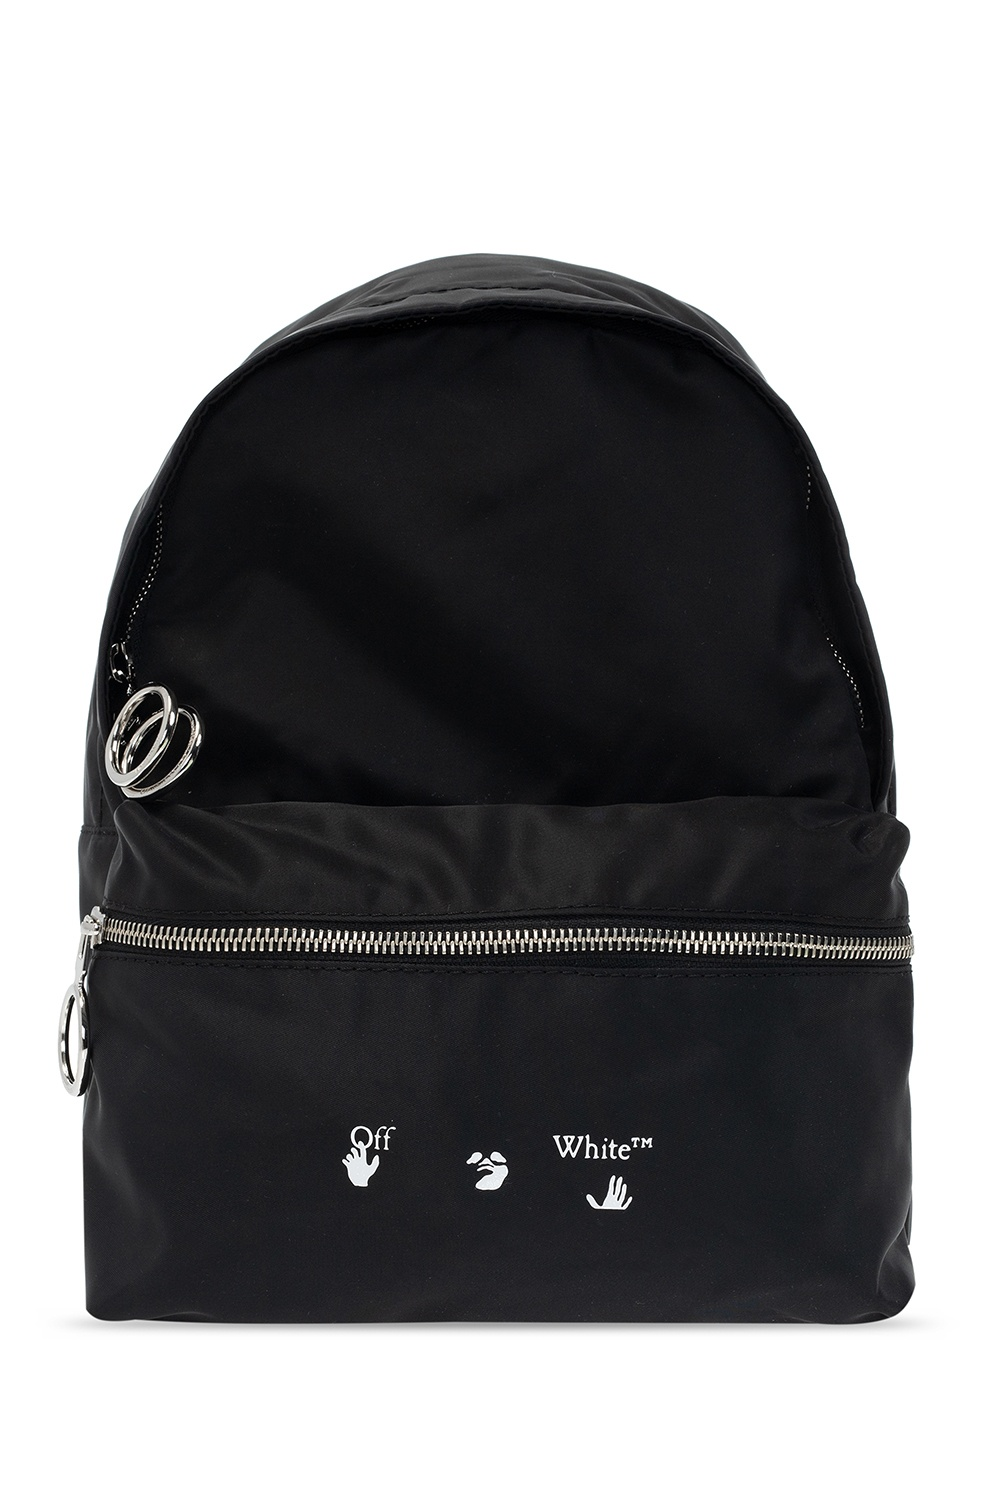 Off-White Backpack with logo